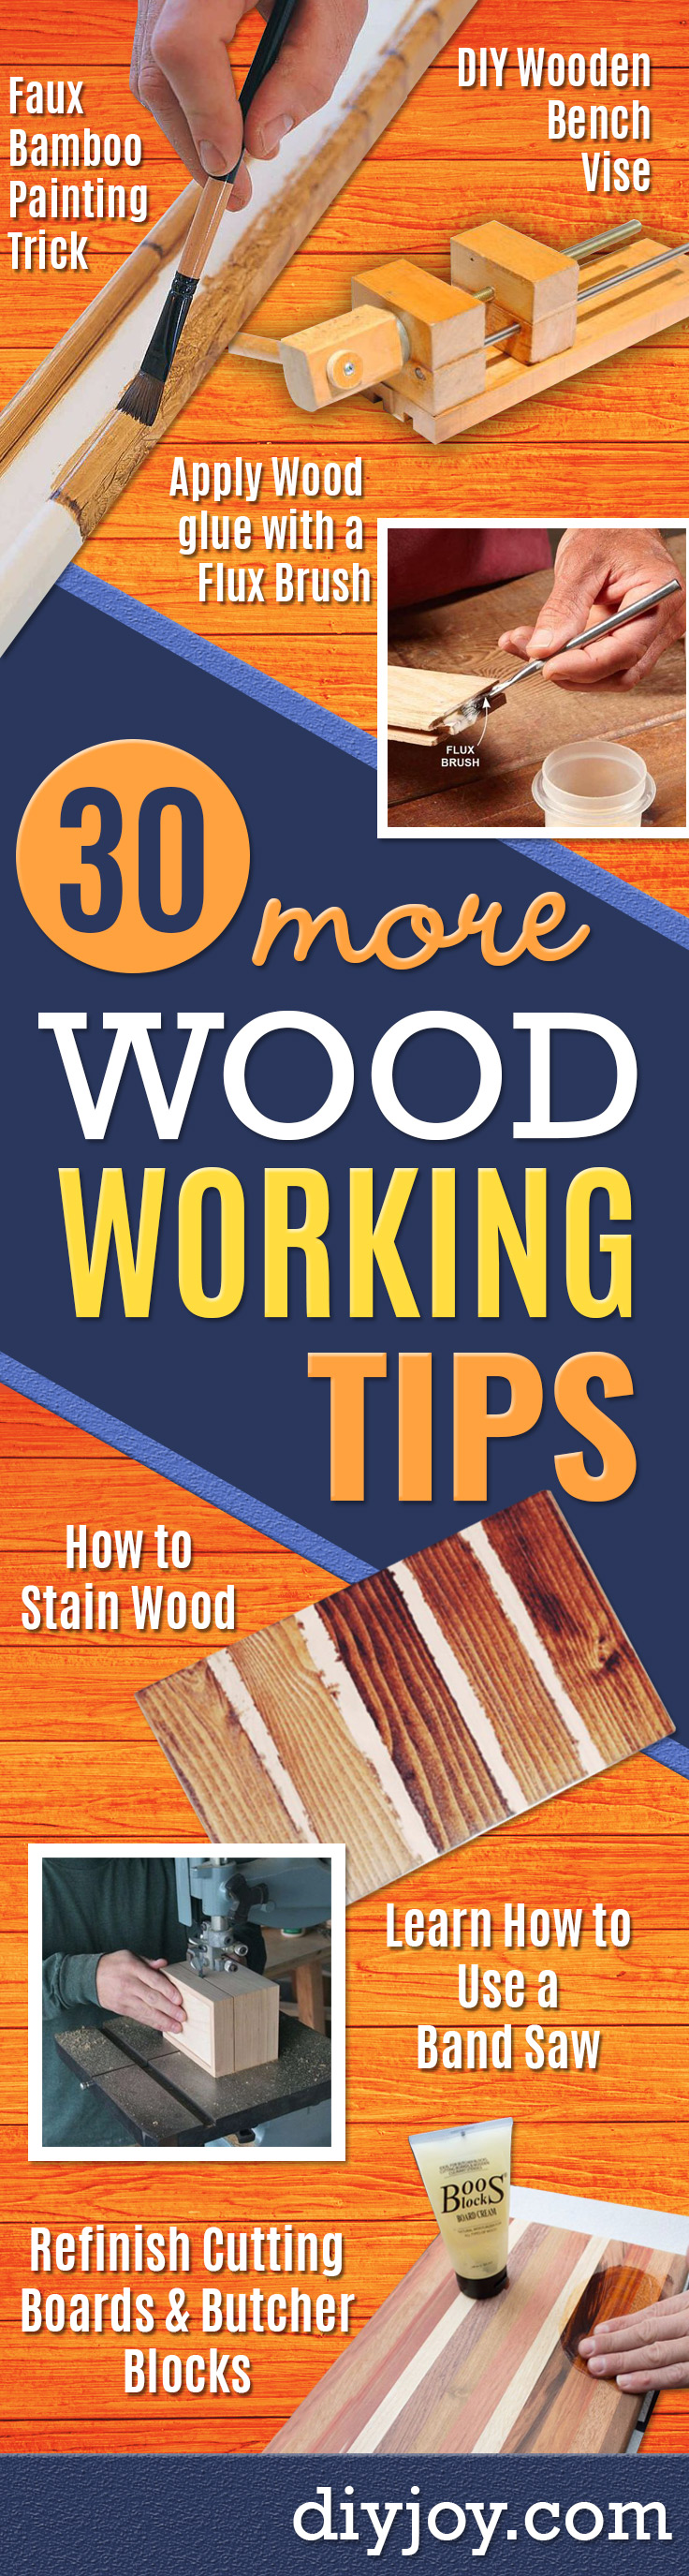 30 Woodworking Tips